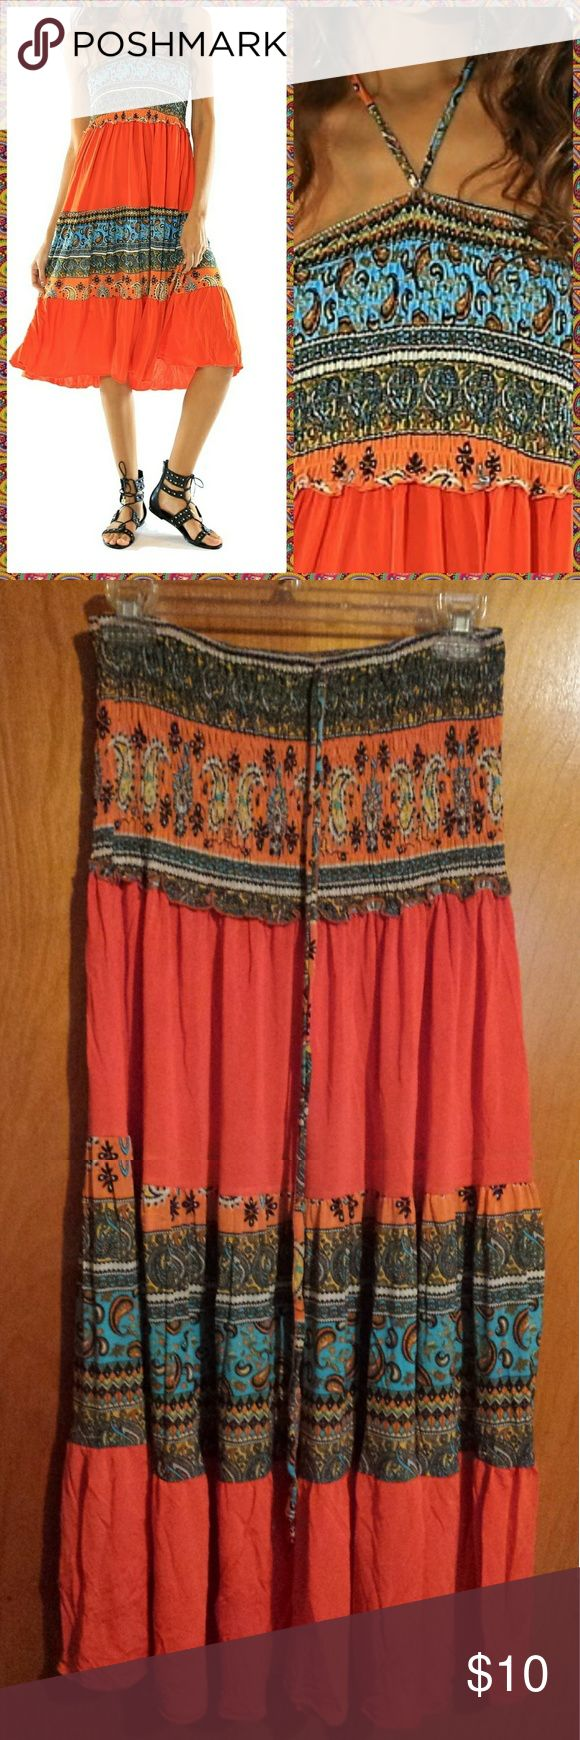 """🛍️ FINAL MARKDOWN - PRICES FIRM Summer convertible festival dress also looks great as a skirt with your favorite top. Features include a convertible neck/waist tie. Orange/Blue paisley print. 95% Polyester,  5% Spandex.   Measurements (approximate): Small - 32-34"""" bust, 35"""" length Medium - 34-36"""" bust, 35"""" length Large - 36-38"""" bust, 36"""" length   PLEASE CONTACT WITH ANY QUESTIONS BEFORE PURCHASE ❔ Sacred Threads Dresses Strapless"""